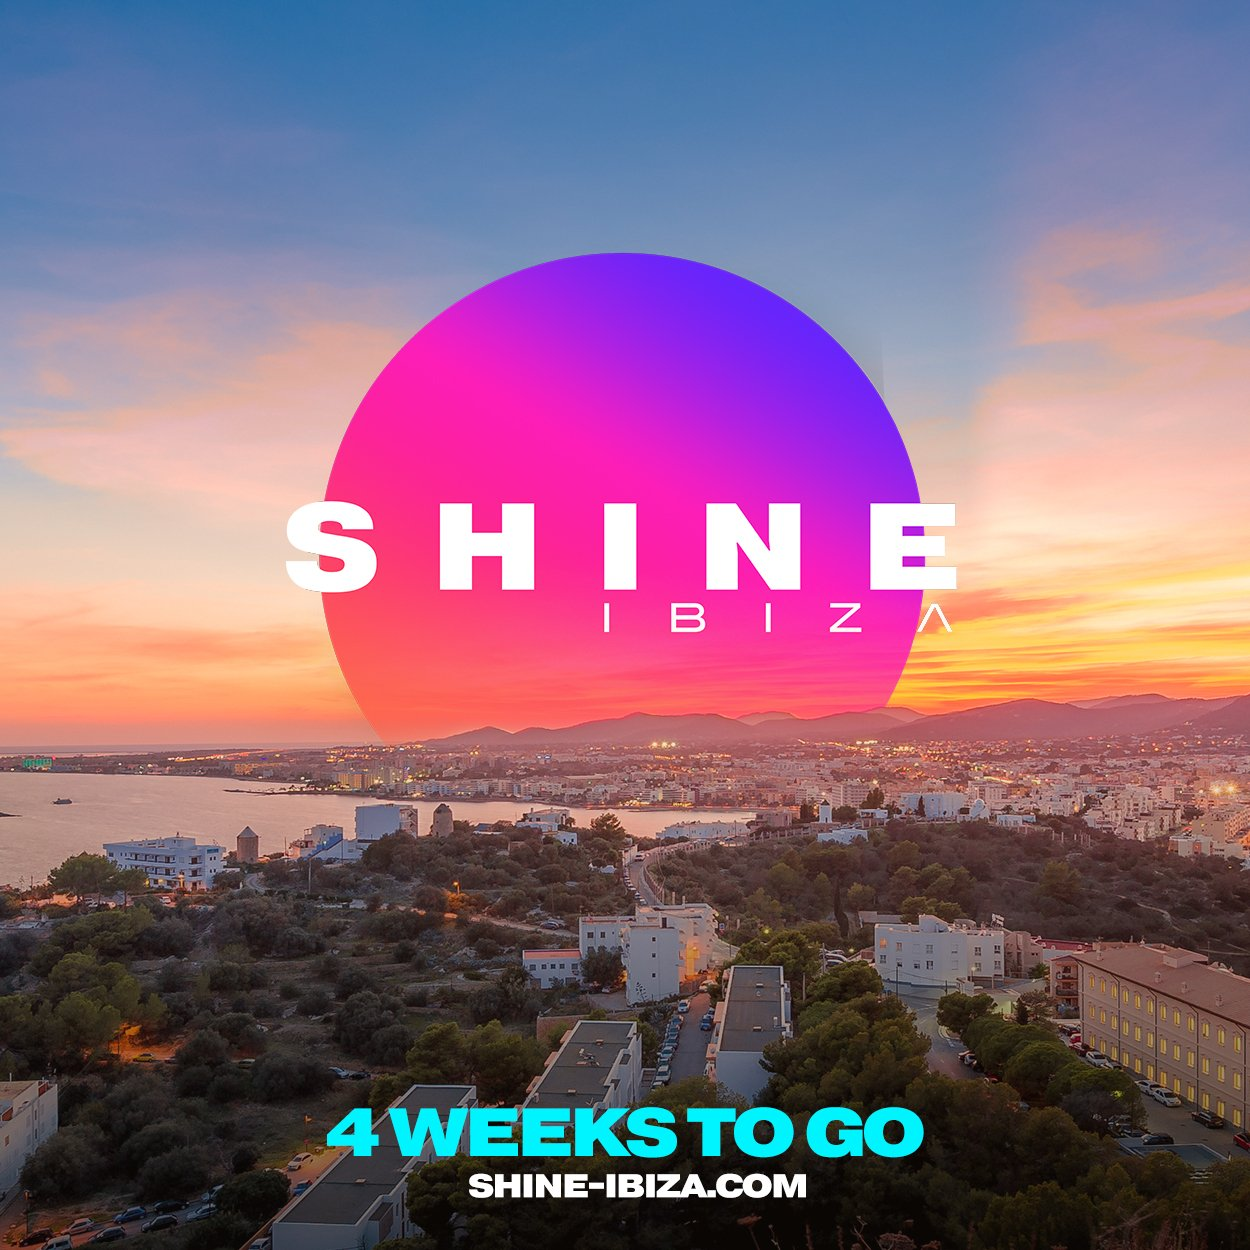 4 weeks till the @SHINE_Ibiza season starts - our home for trance in Ibiza! https://t.co/WYpaIdDcfJ https://t.co/m2EL8C1UHA